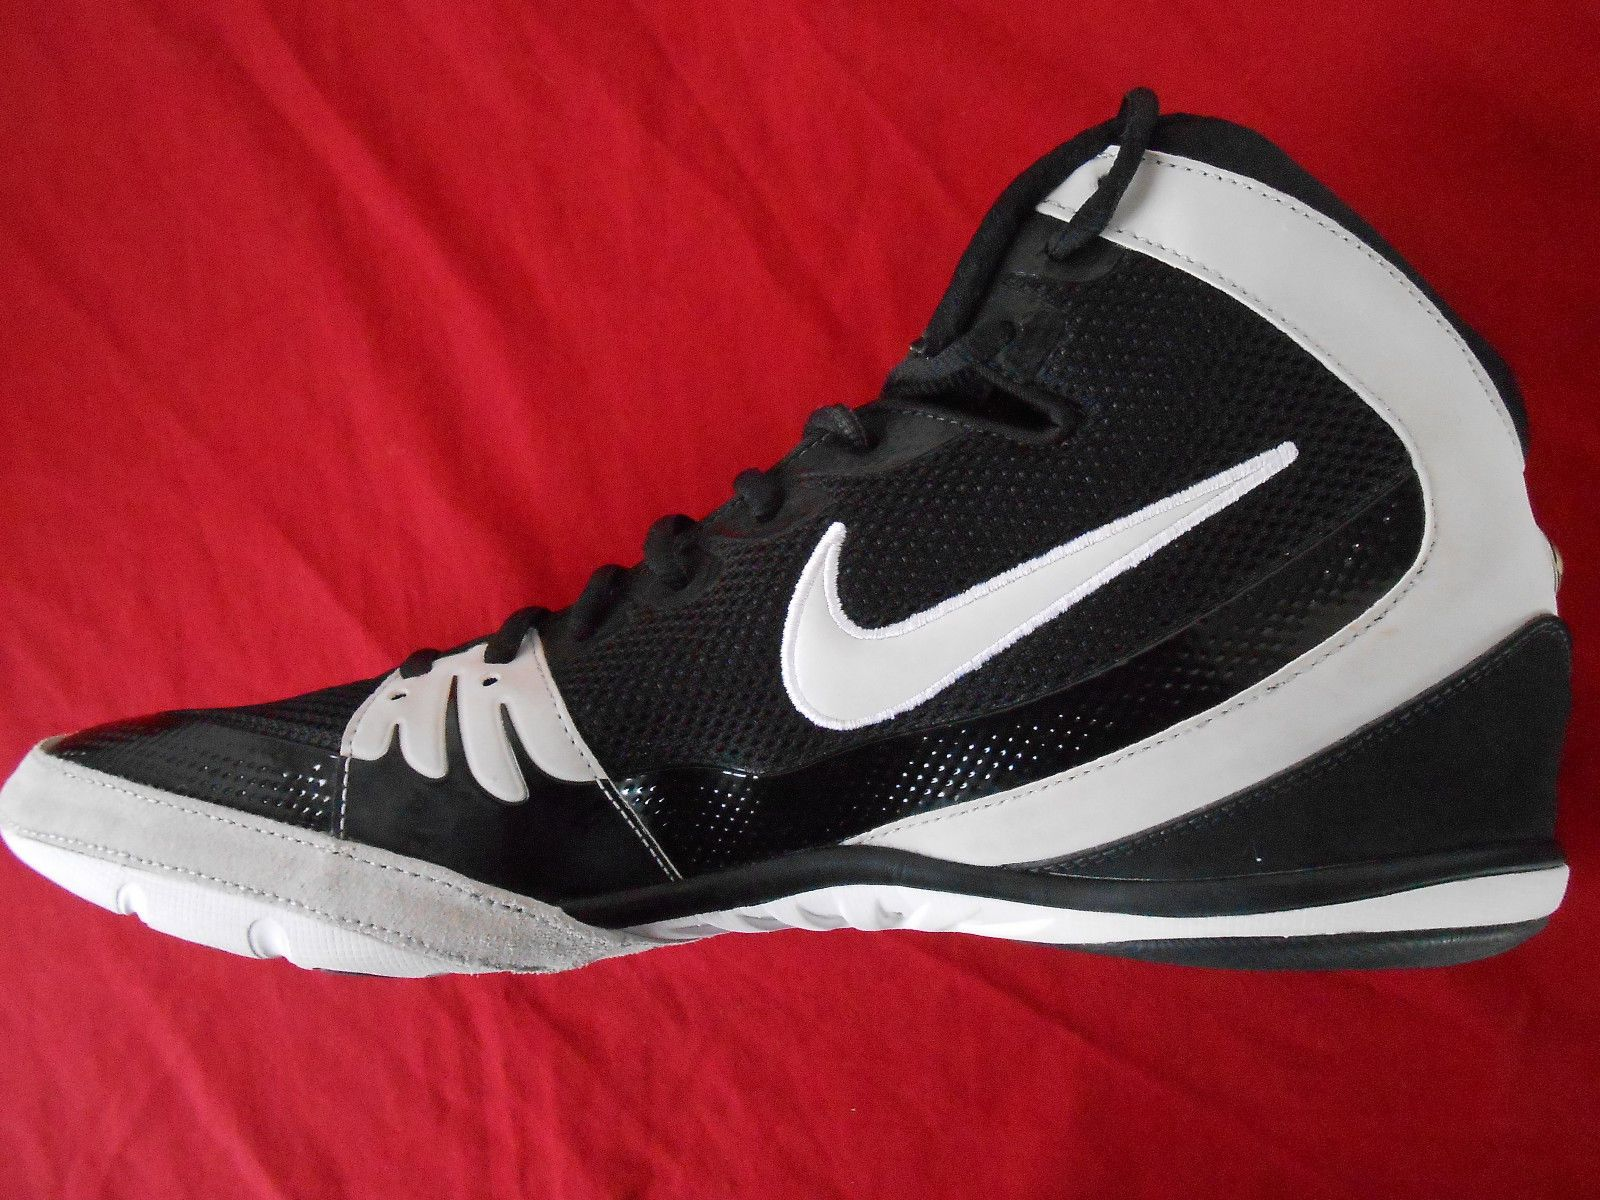 buy popular 9f5c5 9469d RARE Nike Freek Wrestling Shoes Size 12 5 Excellent   eBay